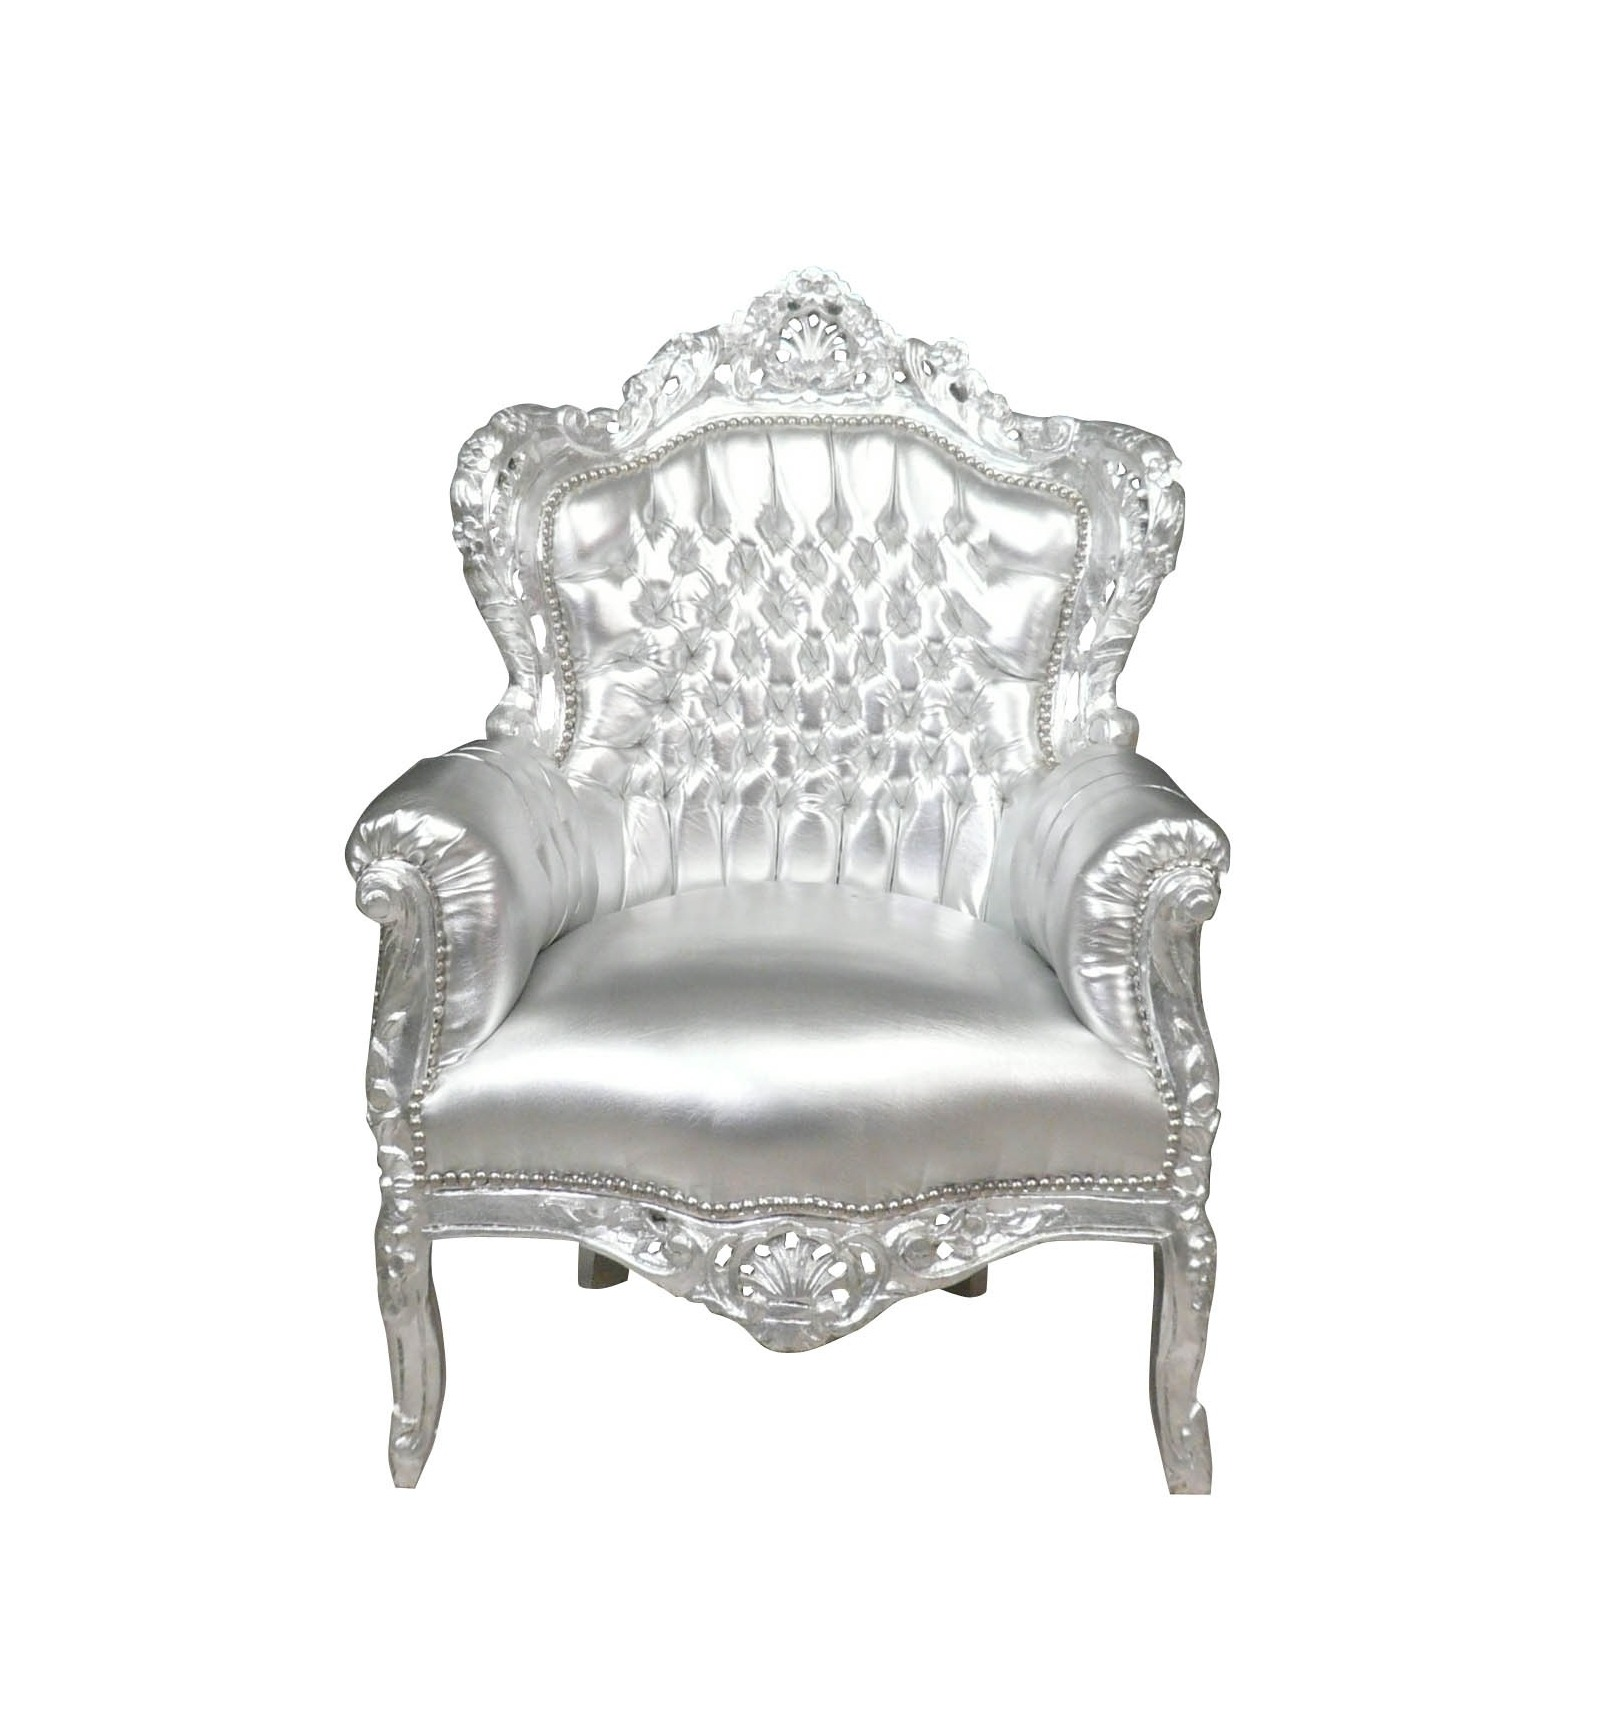 fauteuil baroque argent pour une deco design et esth tique. Black Bedroom Furniture Sets. Home Design Ideas